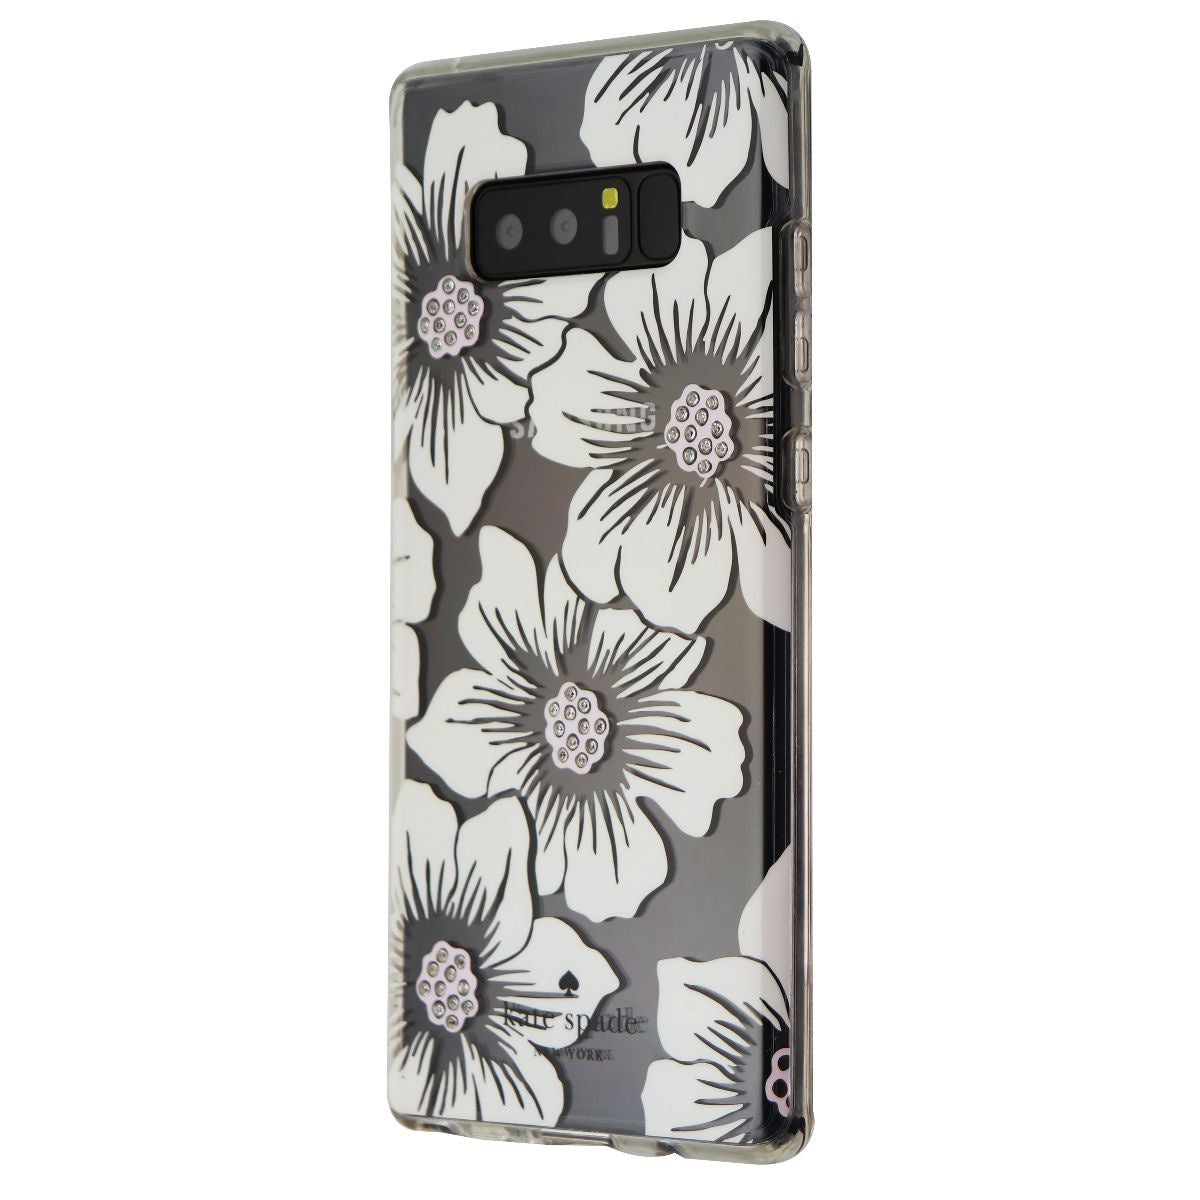 Kate Spade Flexible Hardshell Case for Galaxy Note 8 - Clear/White Flowers